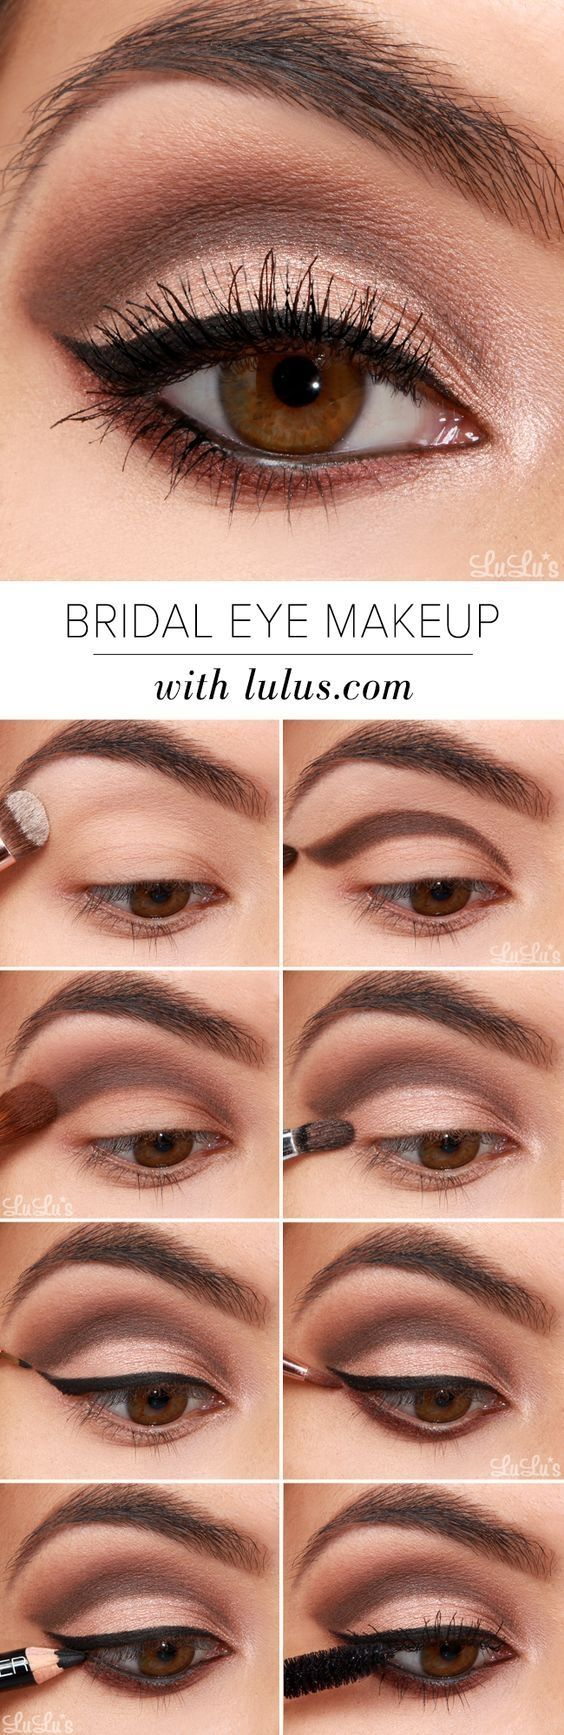 LuLu*s How-To: Bridal Eye Makeup Tutorial #coupon code nicesup123 gets 25% off at www.Provestra.com www.Skinception.com and www.leadingedgehealth.com: by kimberley